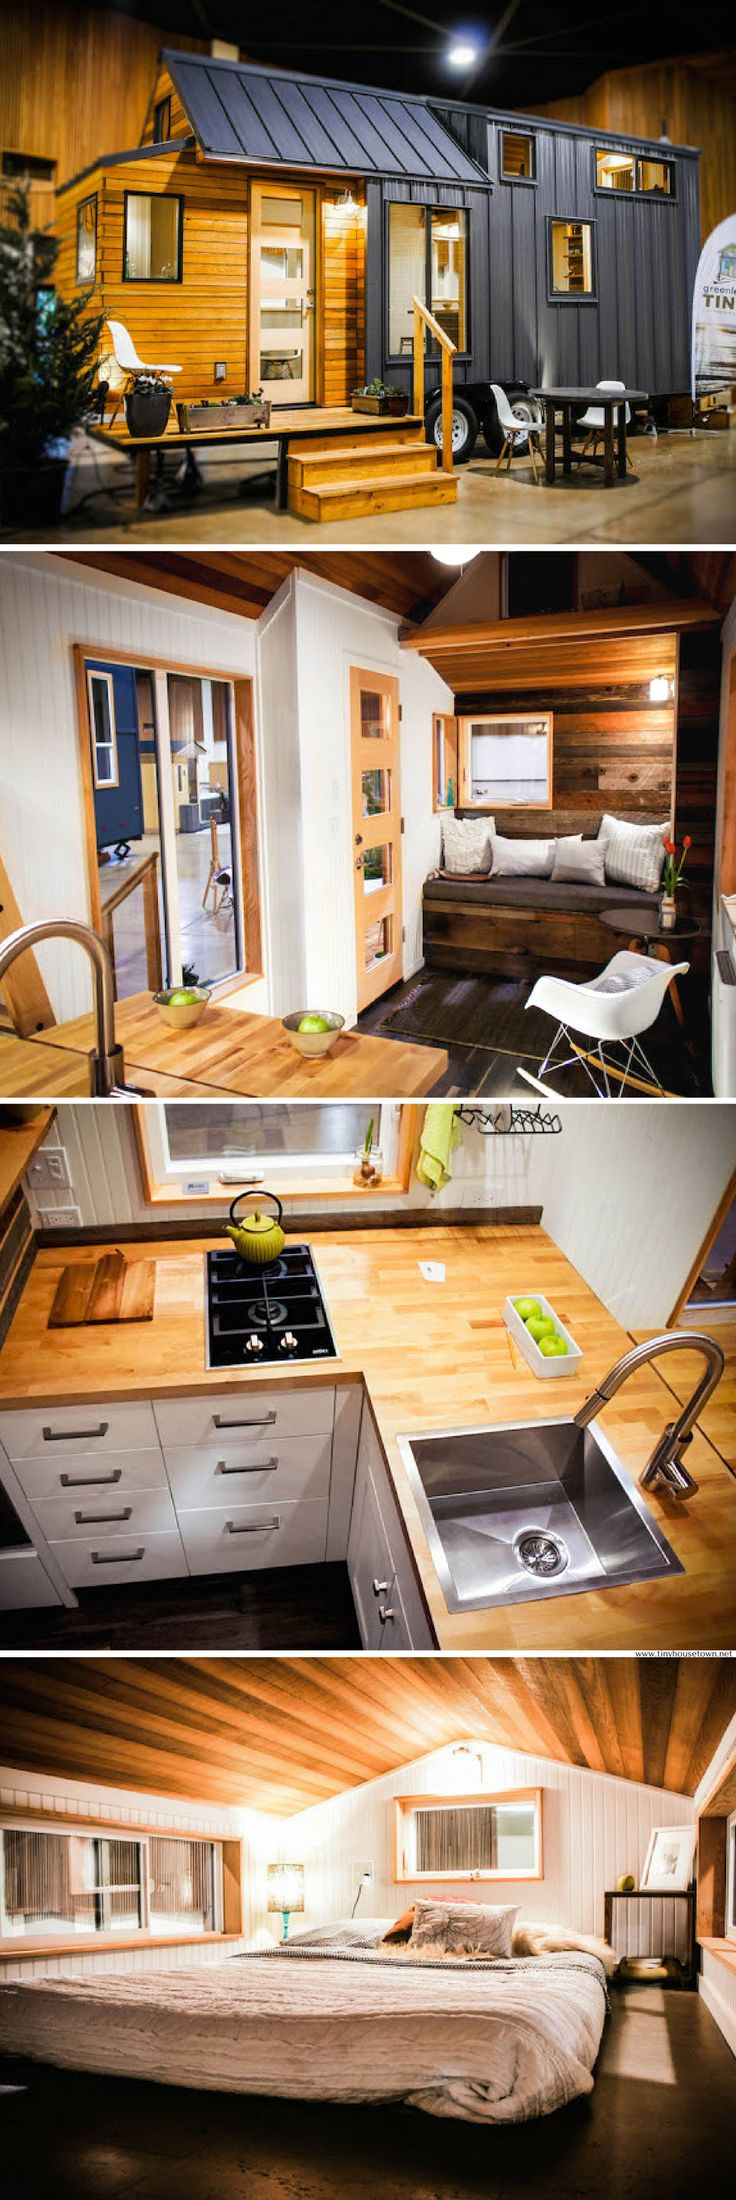 319 best tiny homes images on Pinterest | Tiny house cabin, Tiny ...